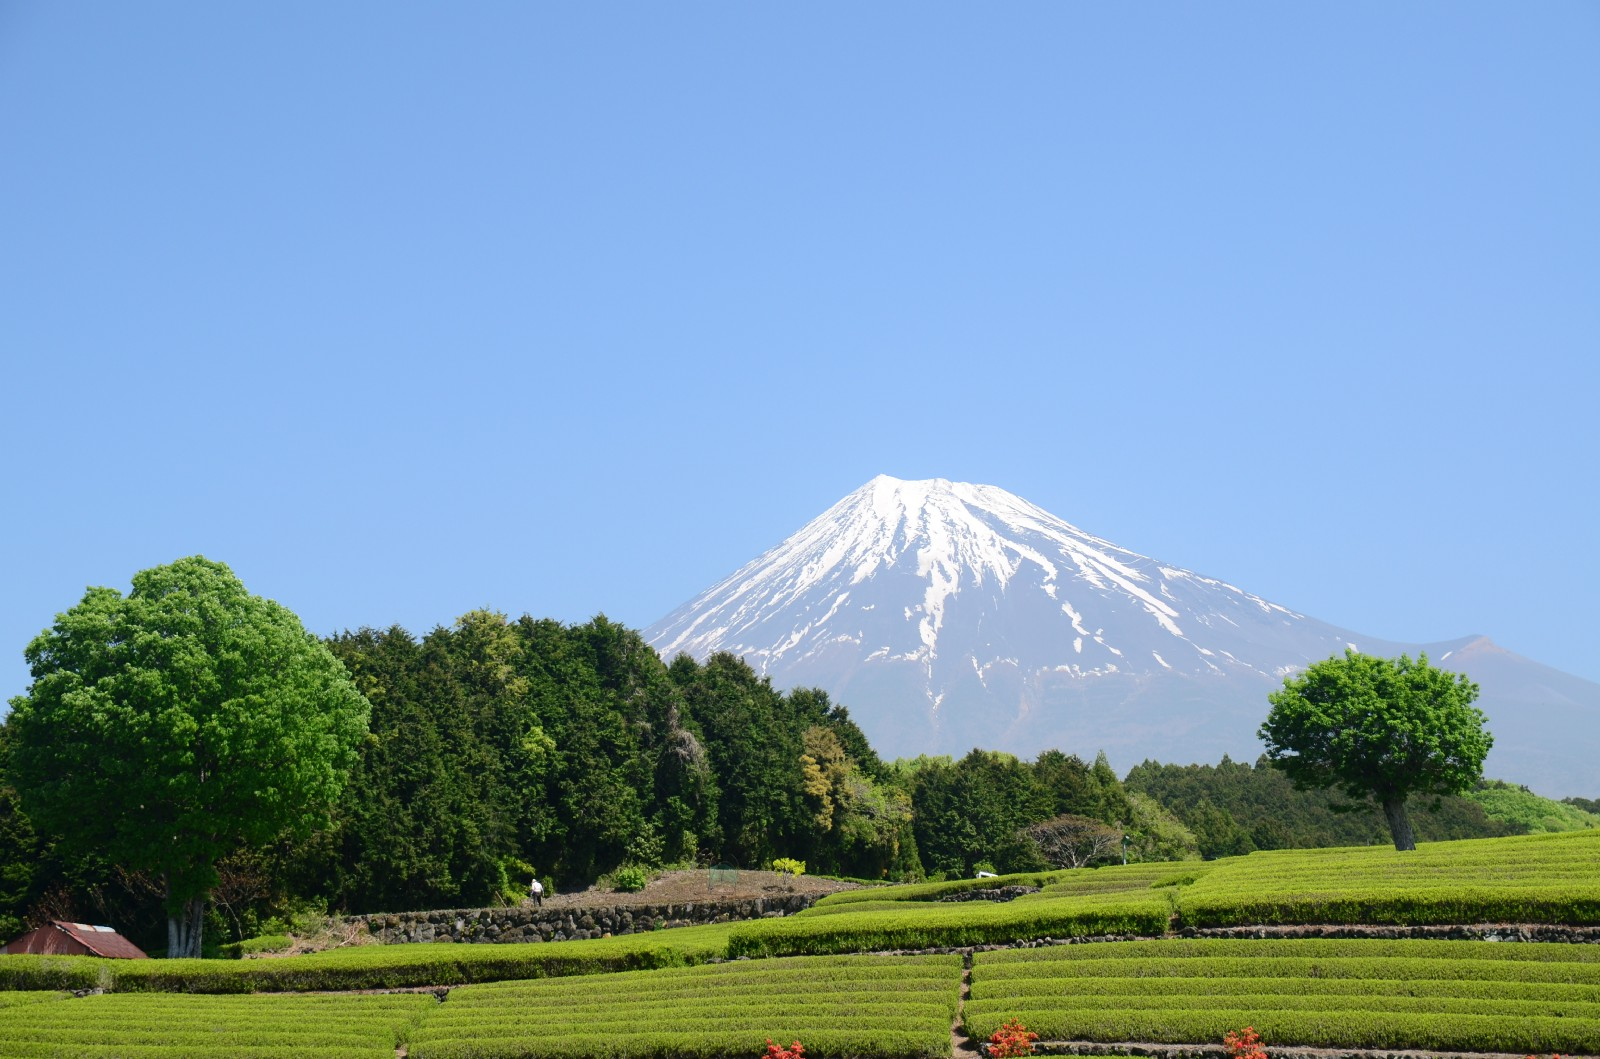 Obuchi Sasaba and Imamiya: Best Green Tea Plantations in Shizuoka